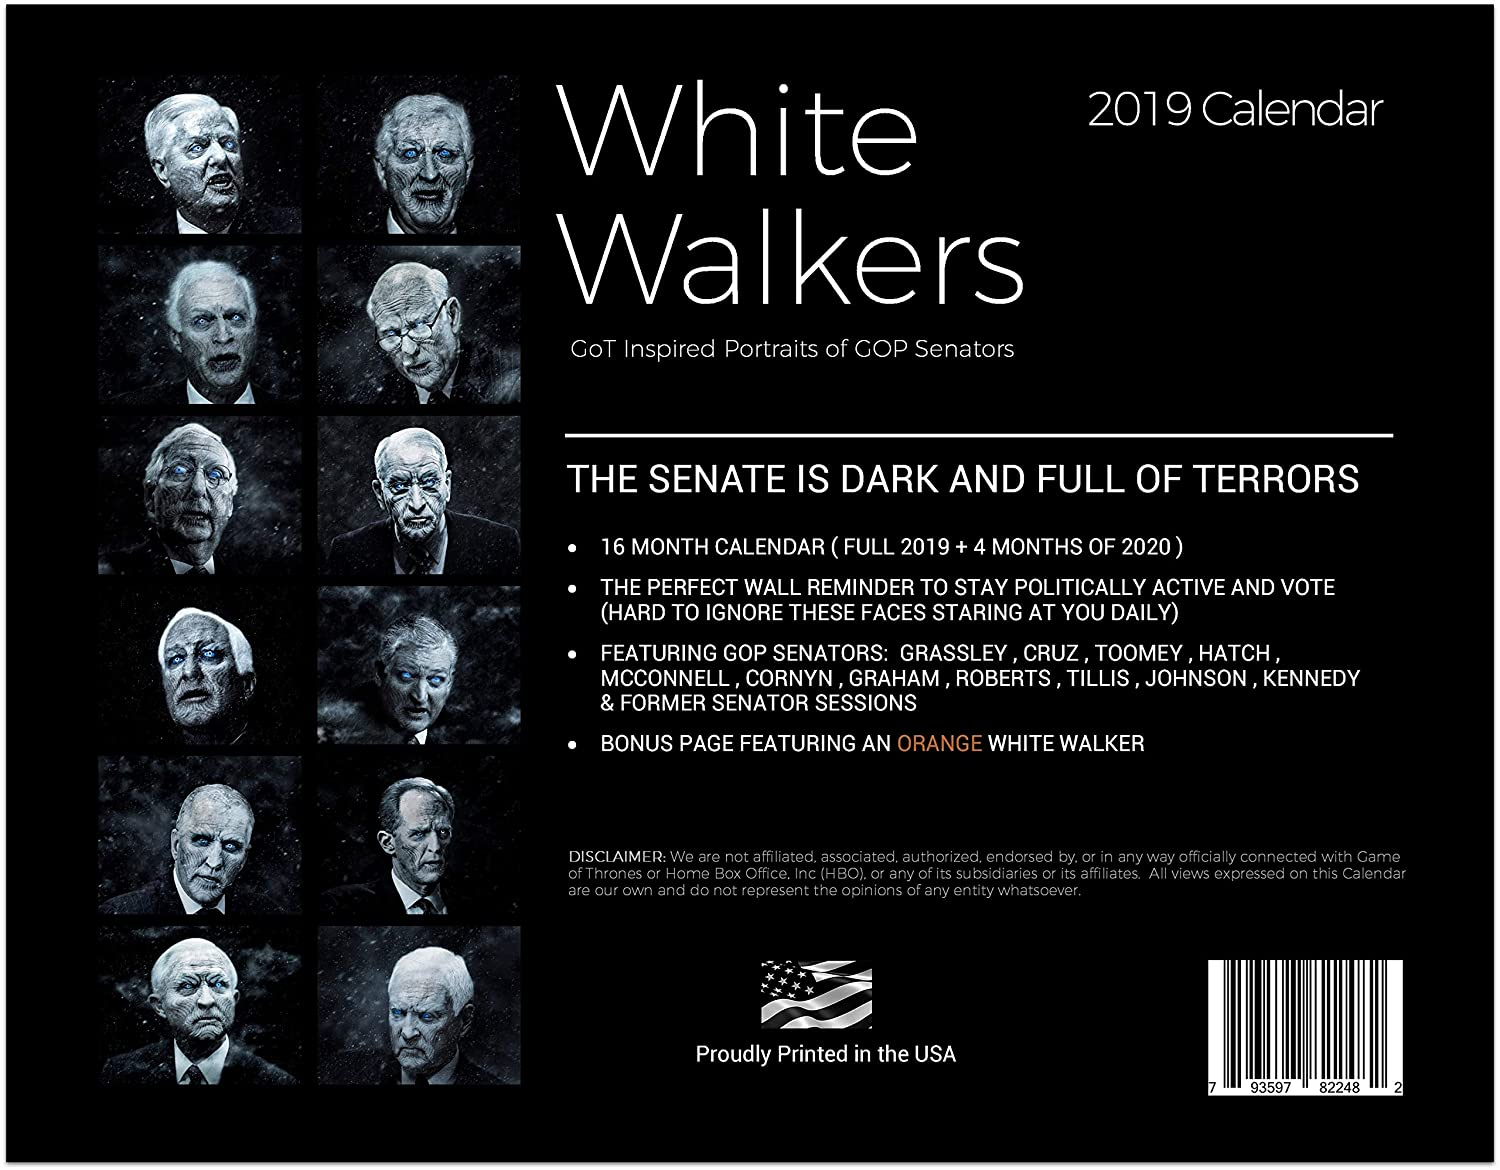 Senate 2020 Calendar Amazon.: White Walkers GOP Senators 2019 Calendar : Office